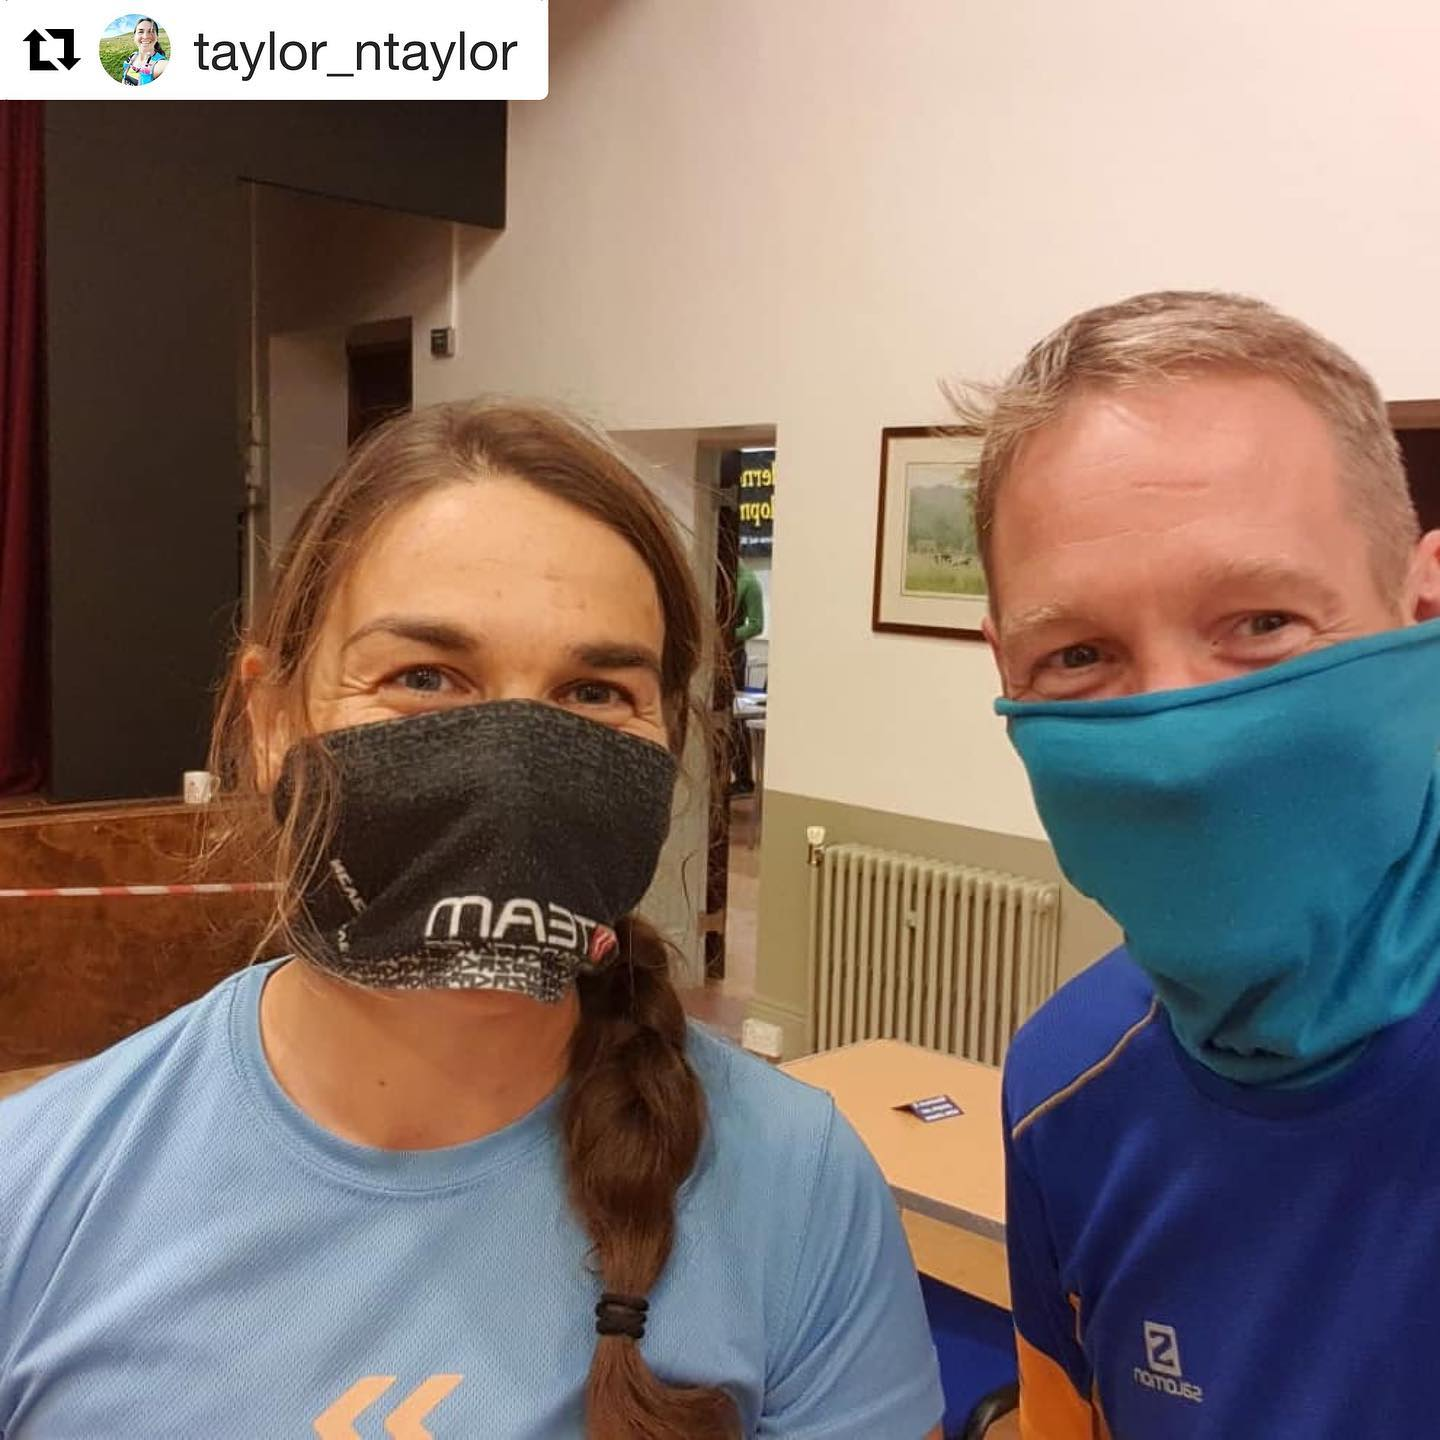 Lovely to see these photos from @taylor_ntaylor - great to have you along! @peakdistrictchallenge ⛰  What a weekend. Thanks to Wilderness Development for a well run, social distance compliant 100km Peak Challenge. Started at 9pm friday finished lunchtime Sat. Good navigation practice for #YallaGo_2020